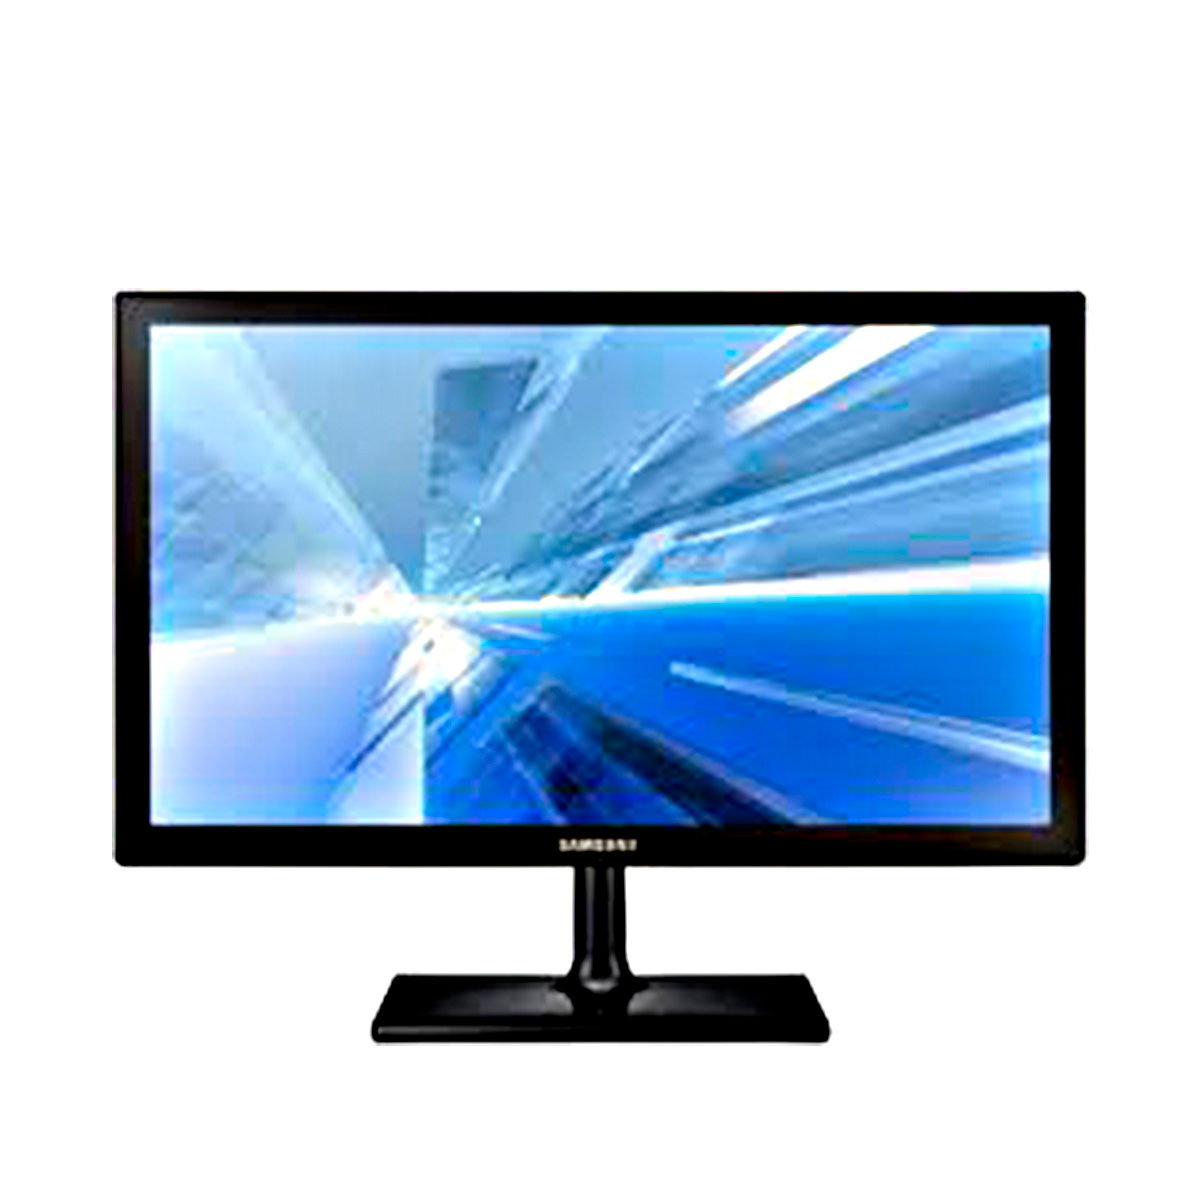 Monitor Samsung 22 LT22C301LBQ/ZP Full HD